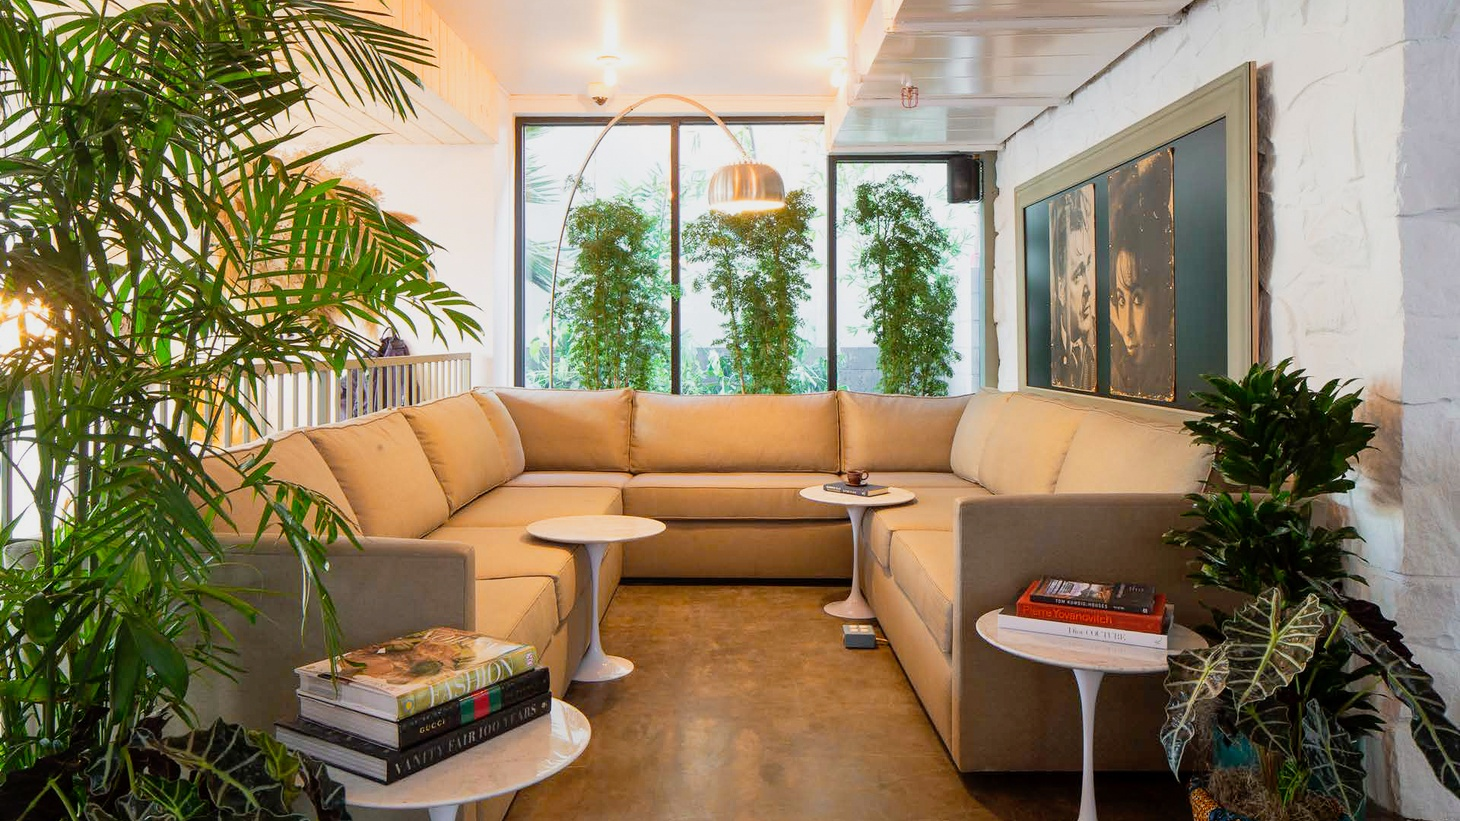 Treehouse is a five-story, fully furnished co-living building in Hollywood. It includes a coffee shop with seated areas like this one.